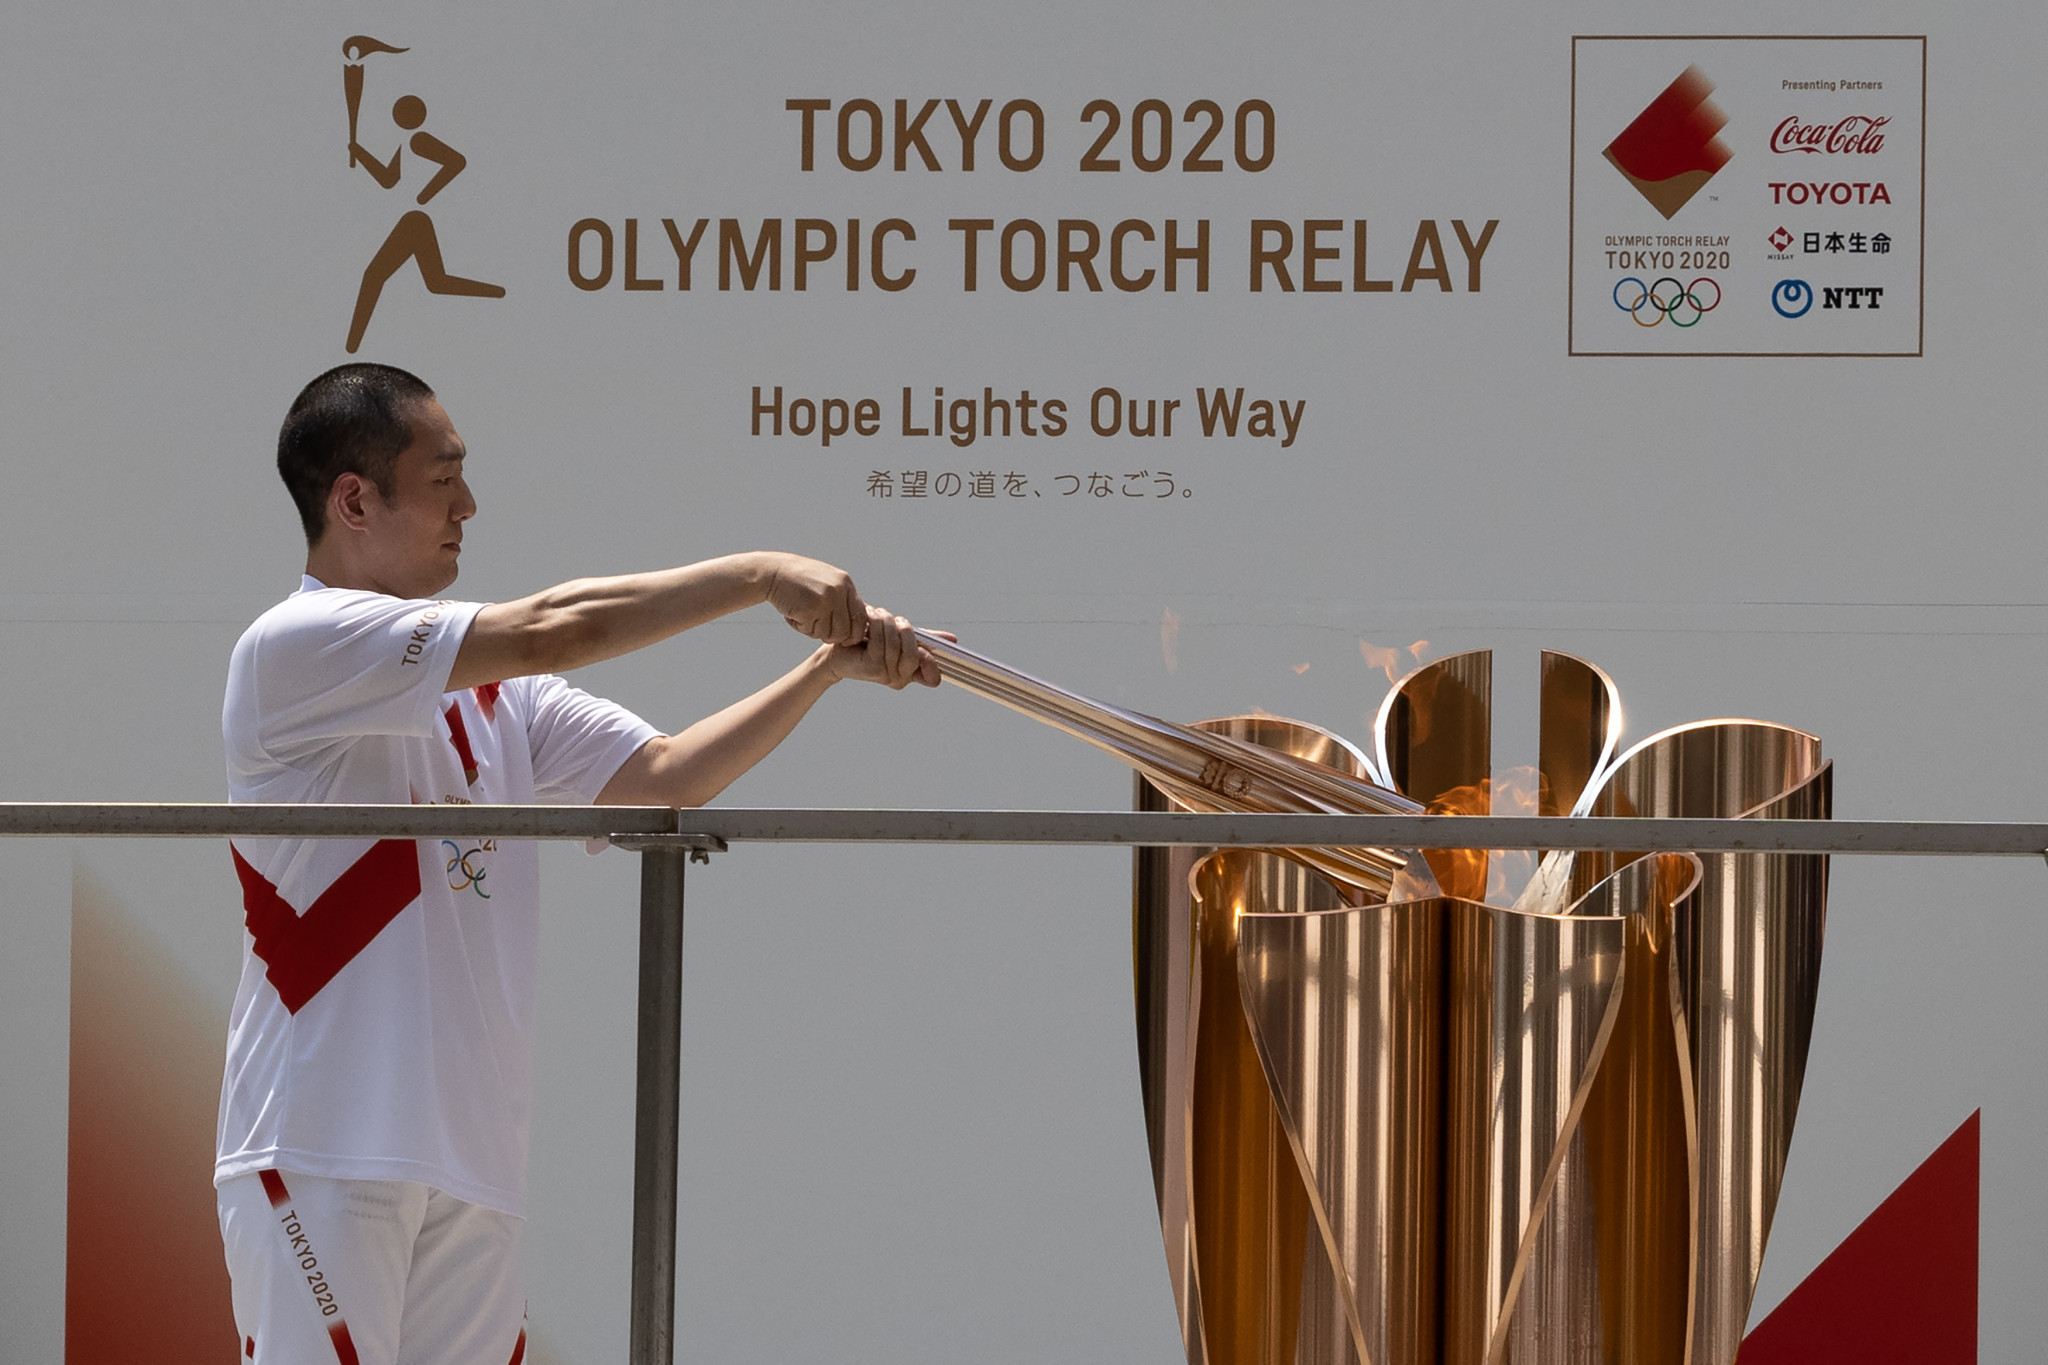 Low-key arrival for Olympic Torch in Tokyo before journey to Opening Ceremony